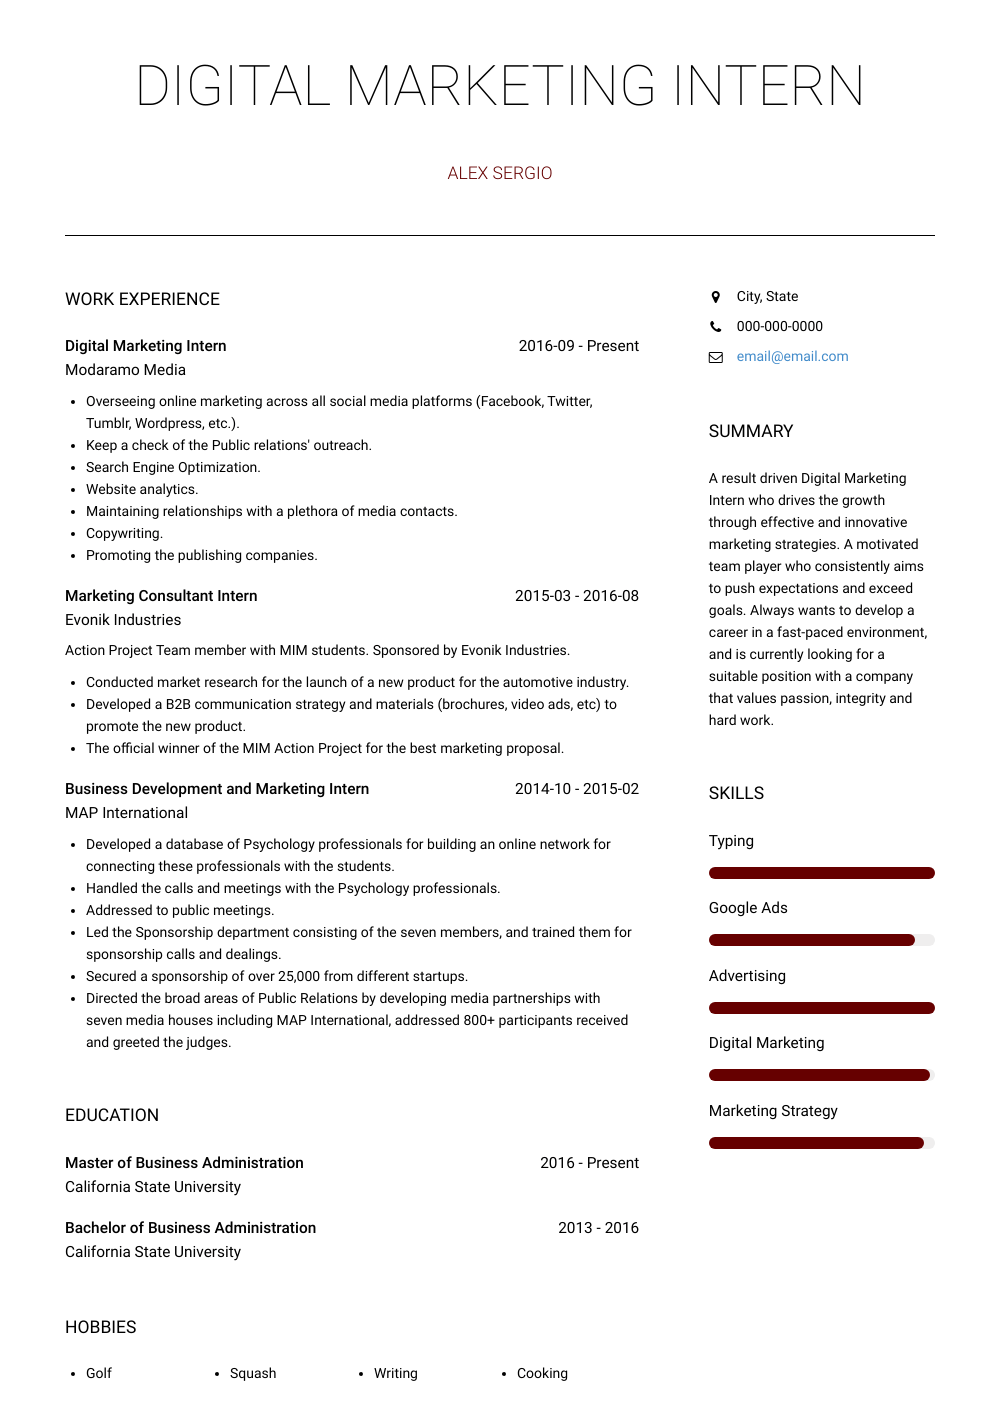 Digital Marketing Intern Resume Sample